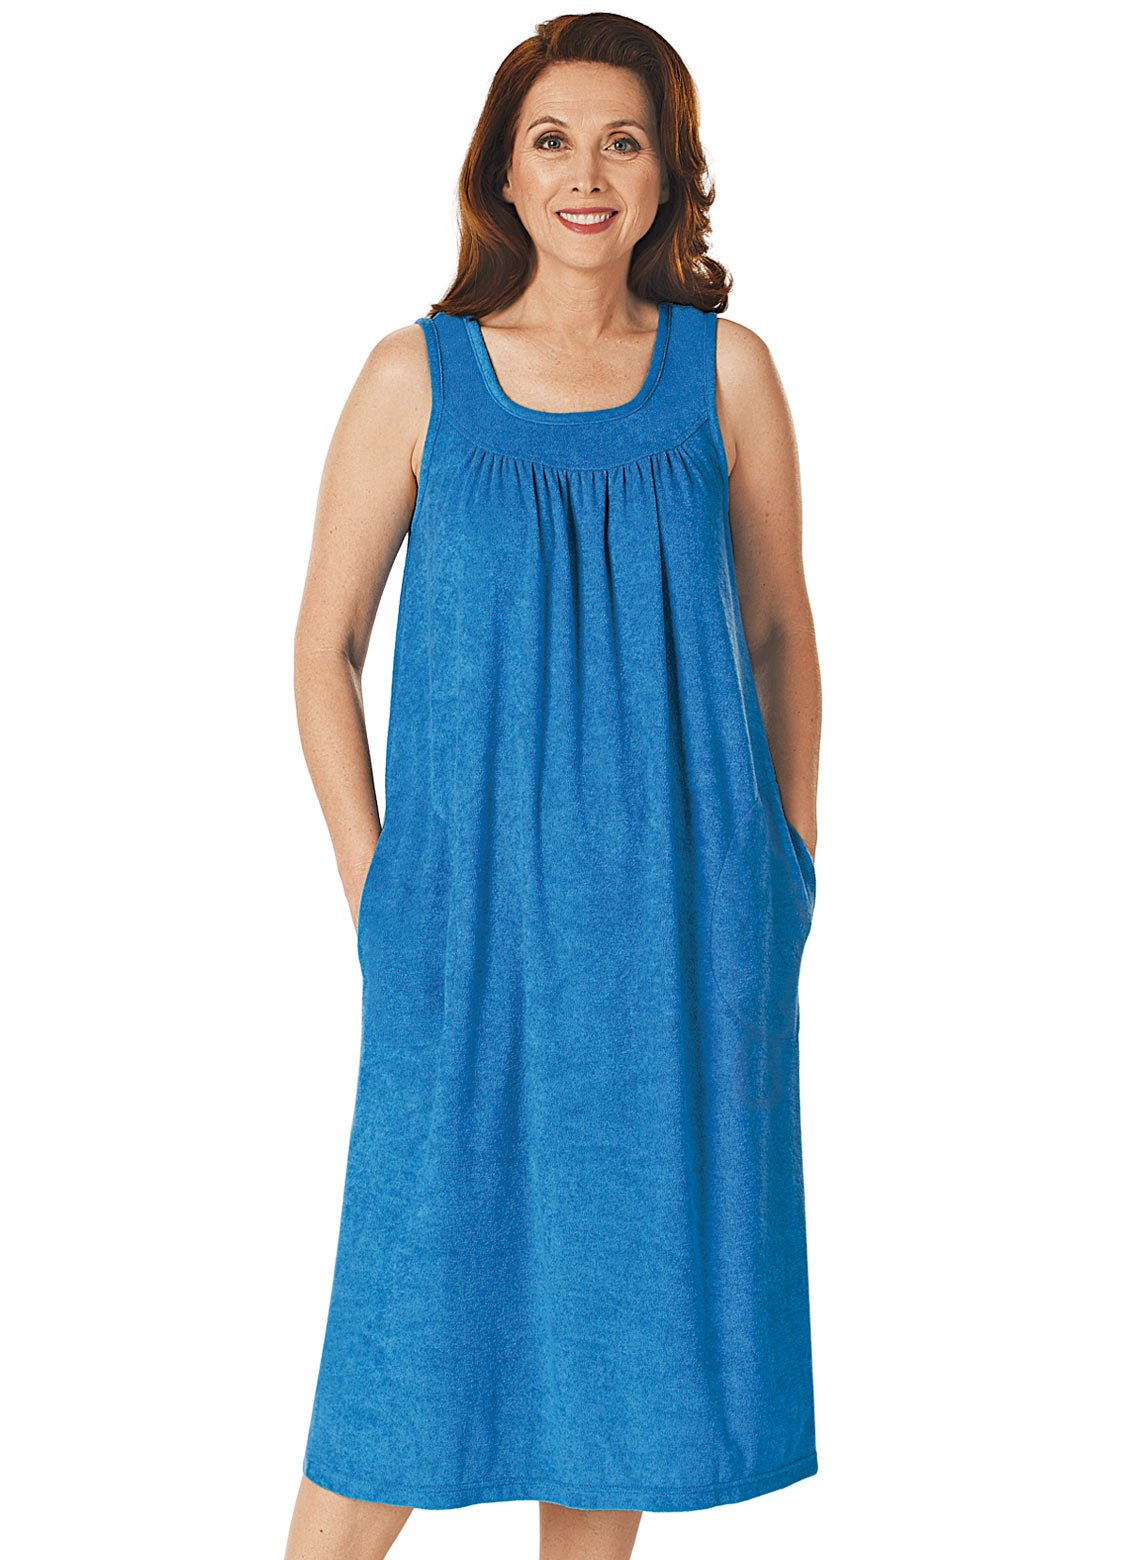 Carol Wright Gifts Sleeveless Terry Dress, Royal, Size Extra Large (3X)